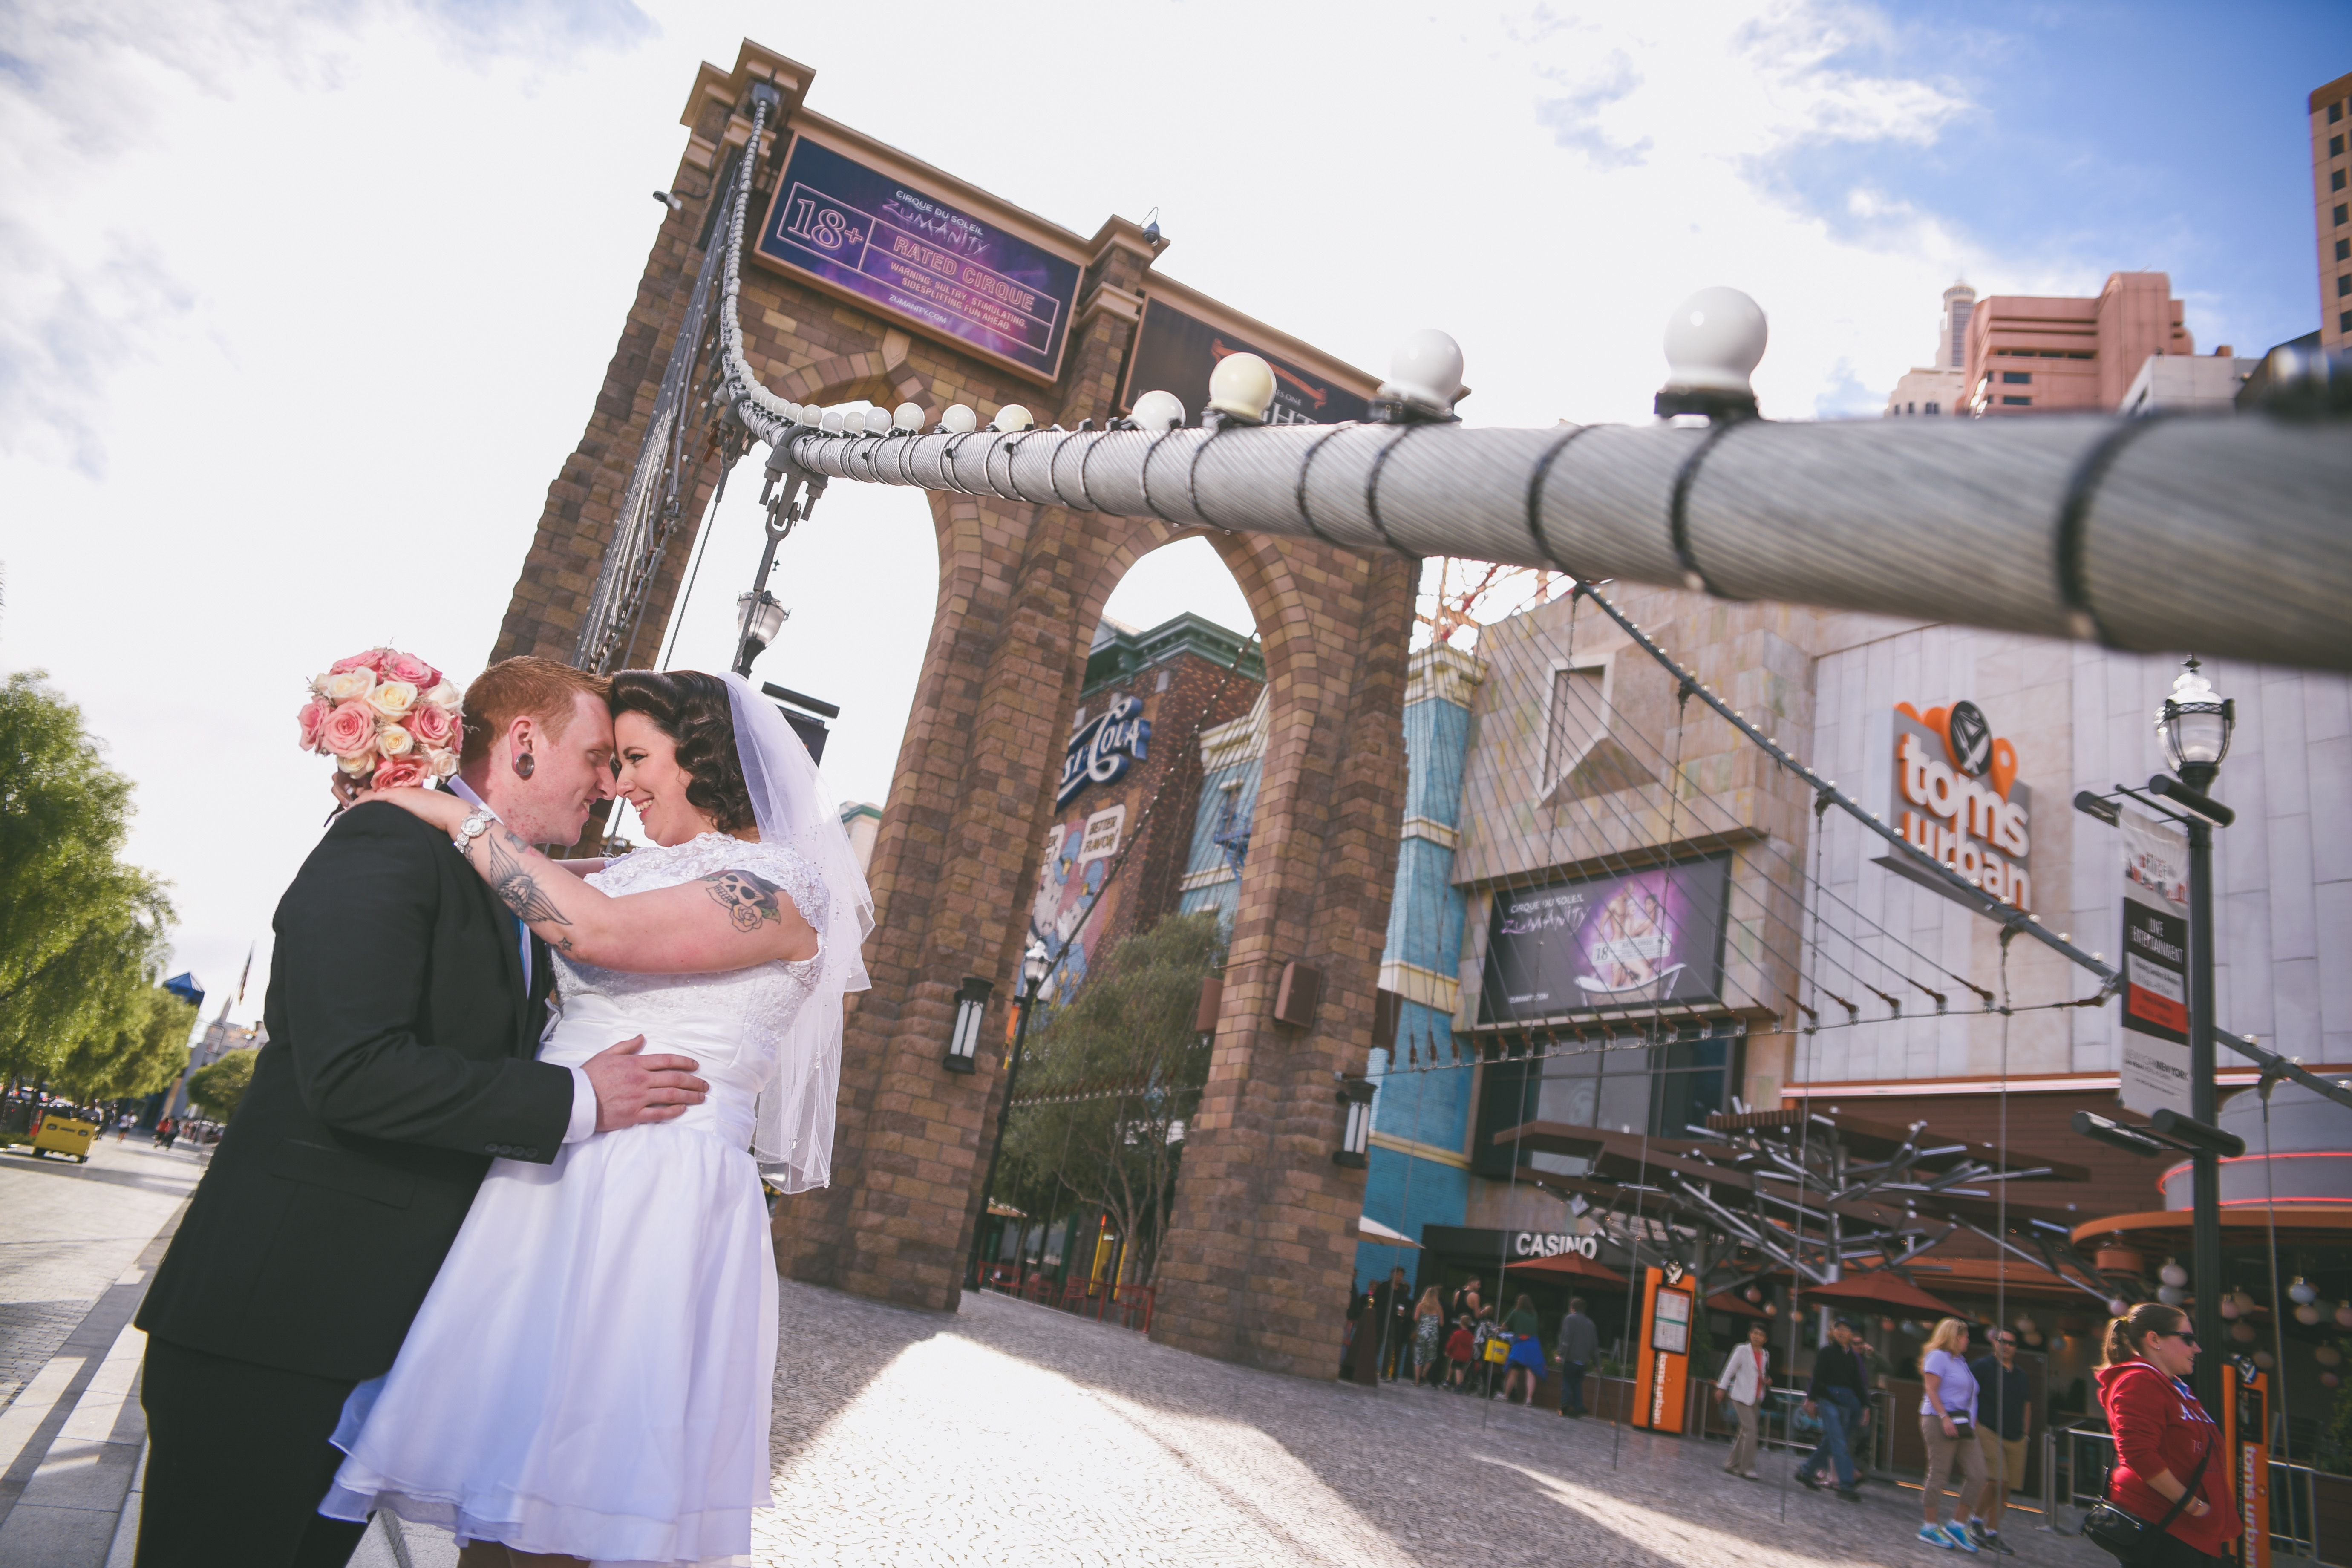 Super Cool Wedding Photo Shot At The NYNY Las Vegas Hotel And Casino By Chapel Of